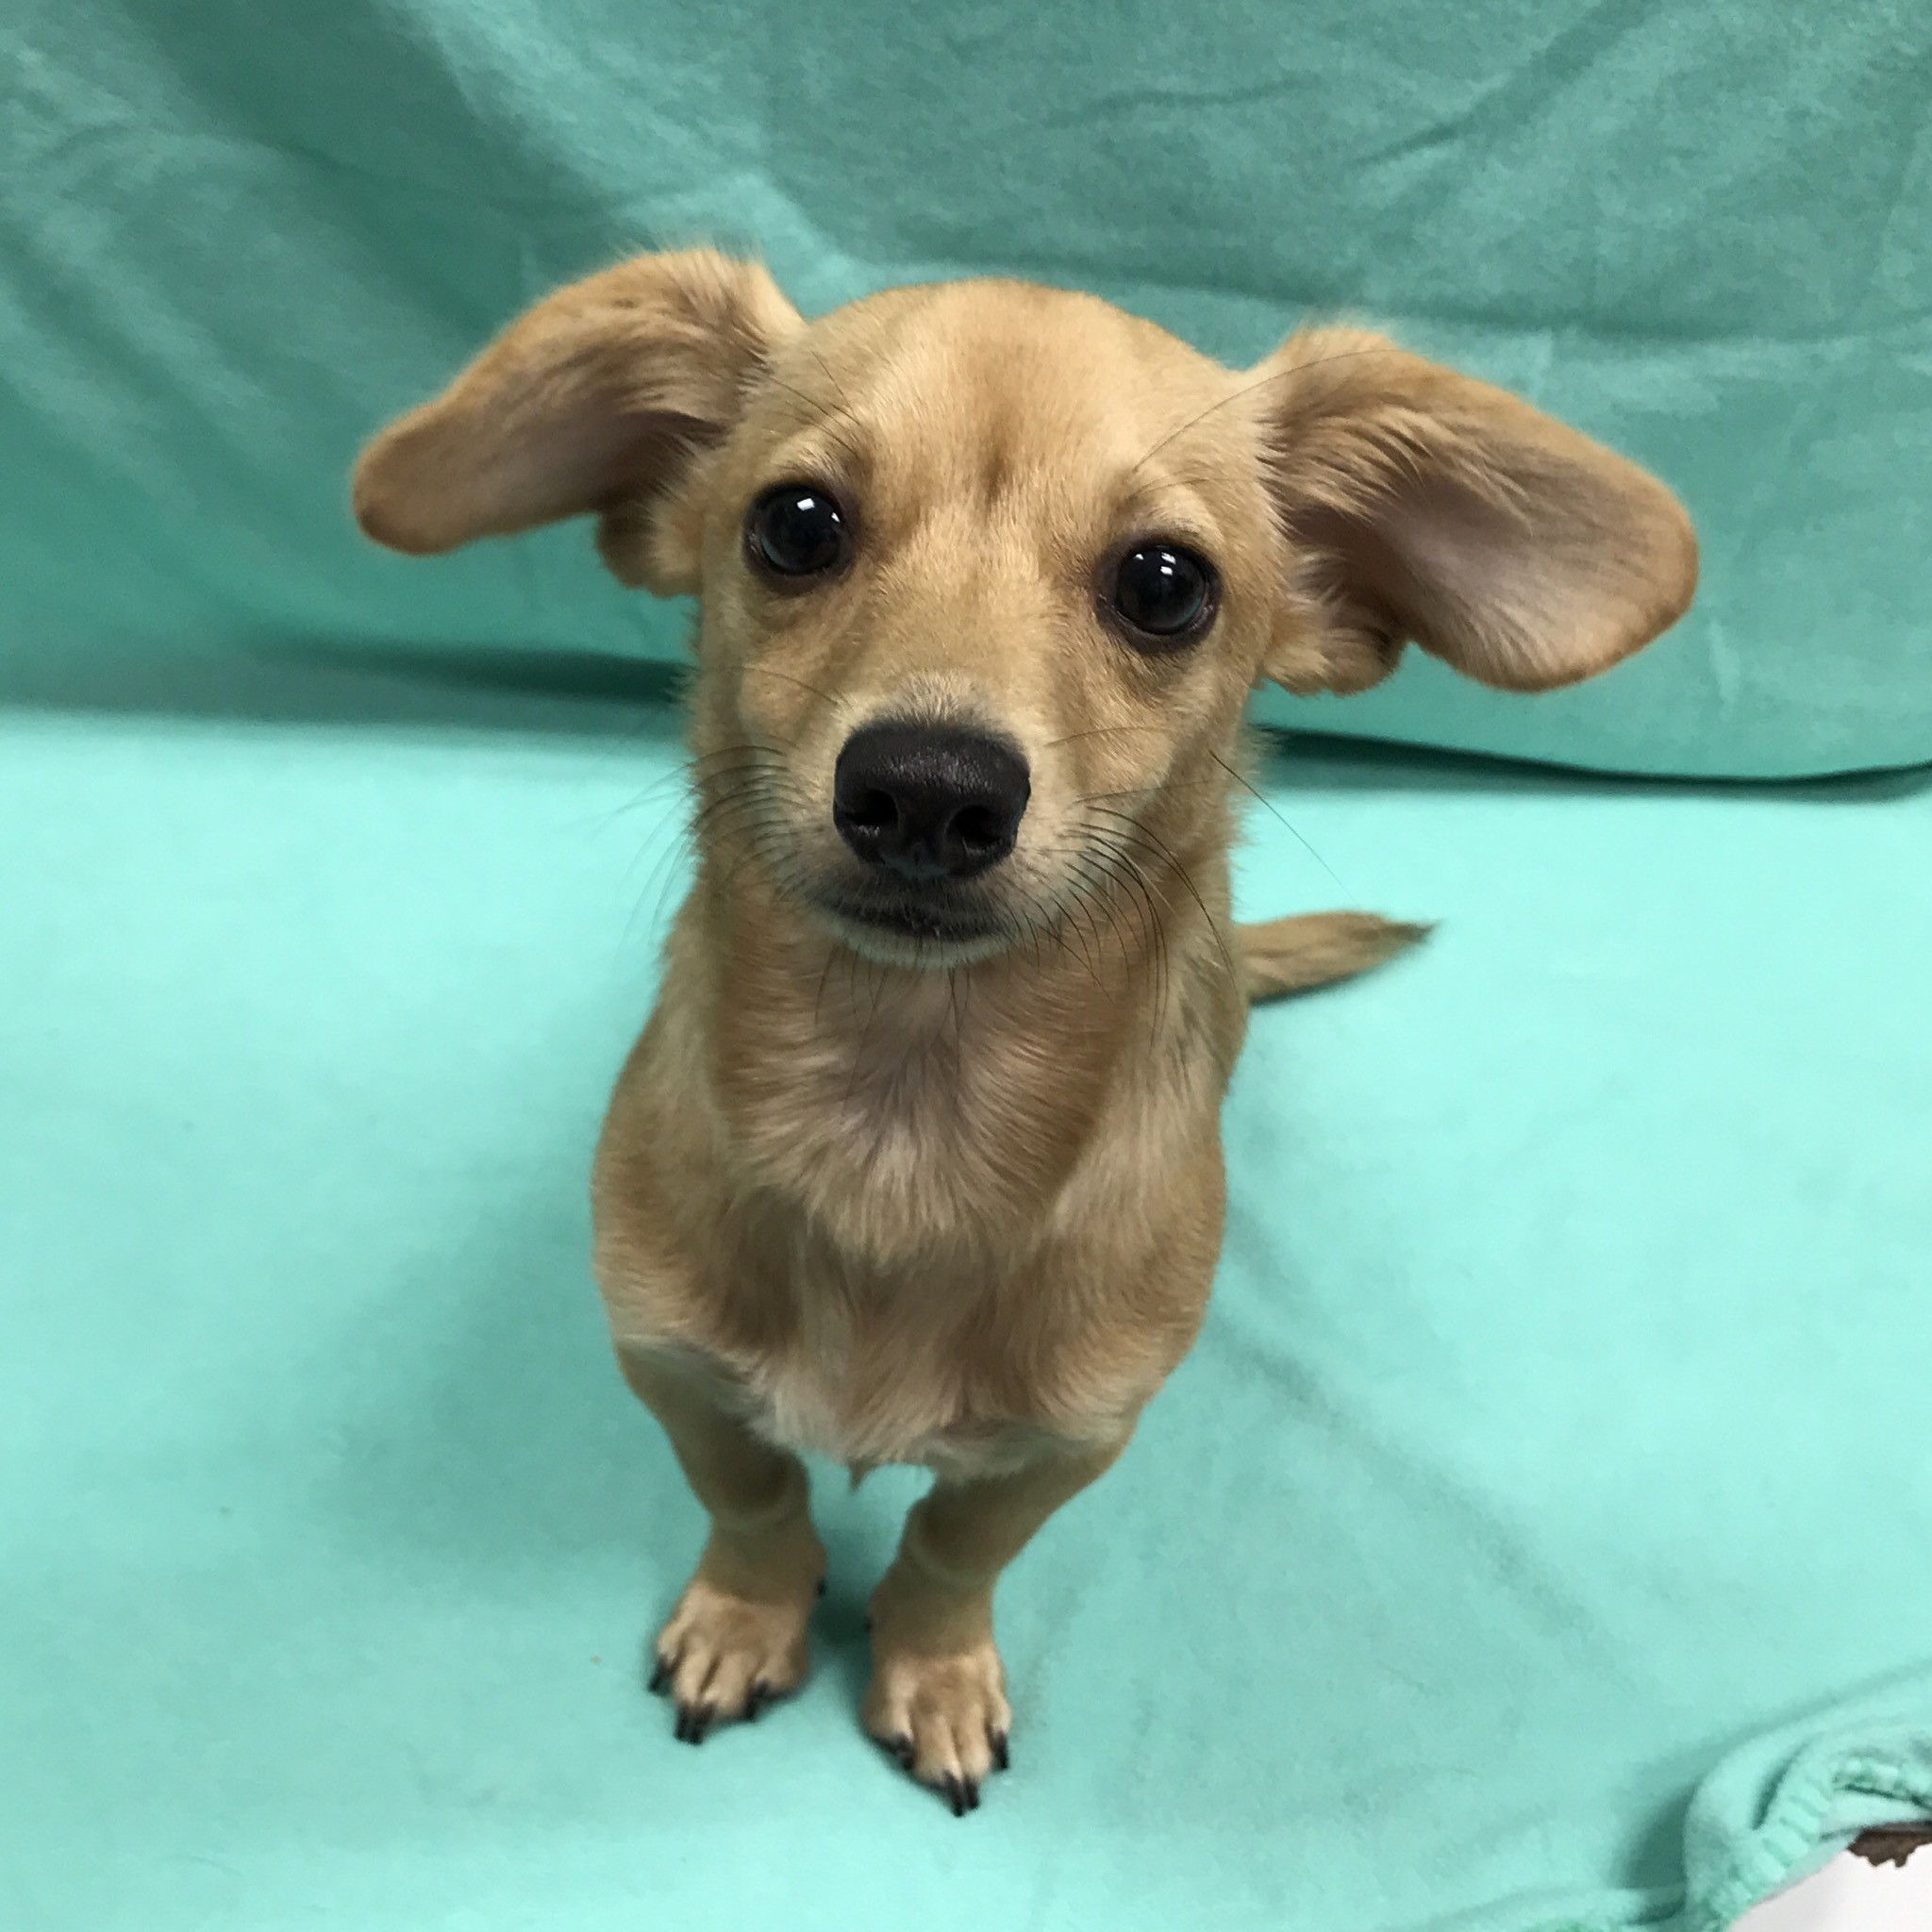 San Leon, TX - Dachshund. Meet Dottie a Dog for Adoption.